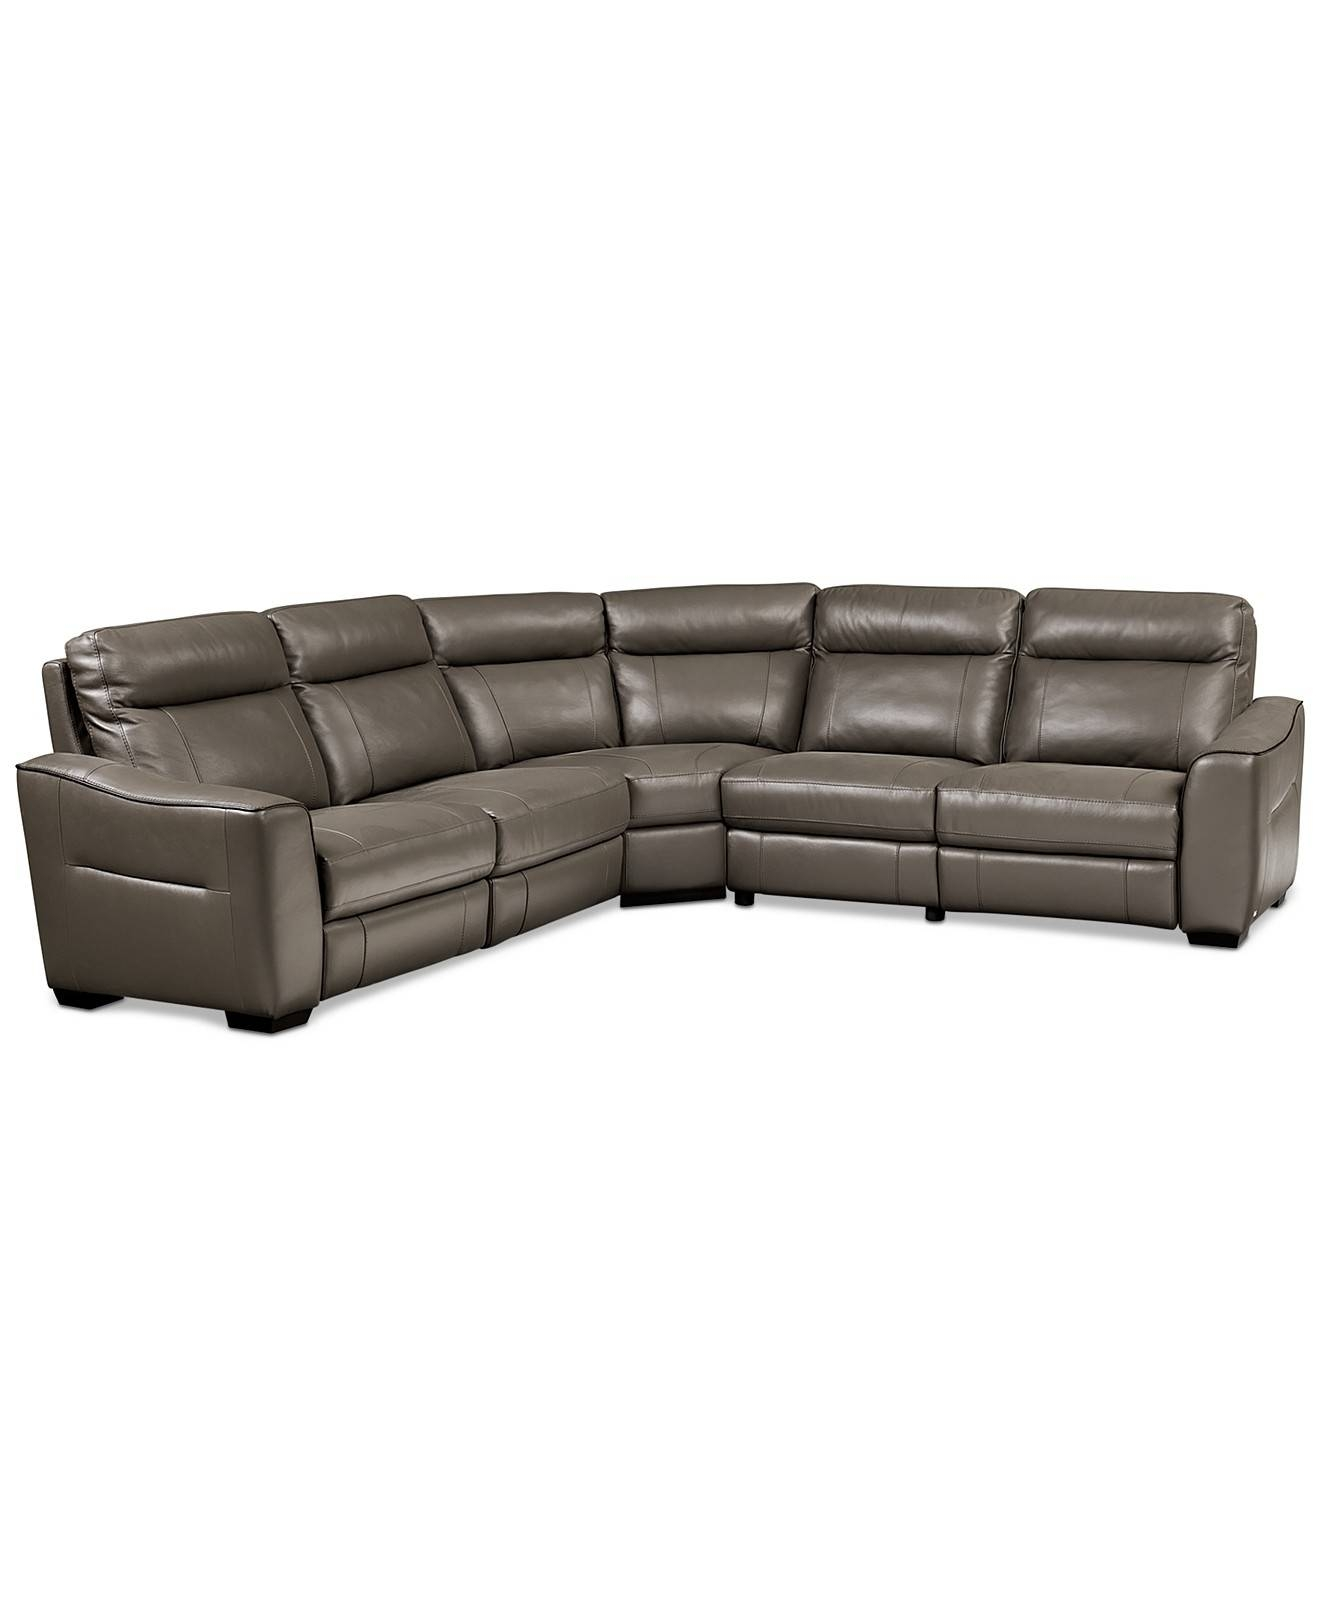 Curved Sectional Sofas At Macys | Tehranmix Decoration regarding Curved Sectional Sofa With Recliner (Image 4 of 30)